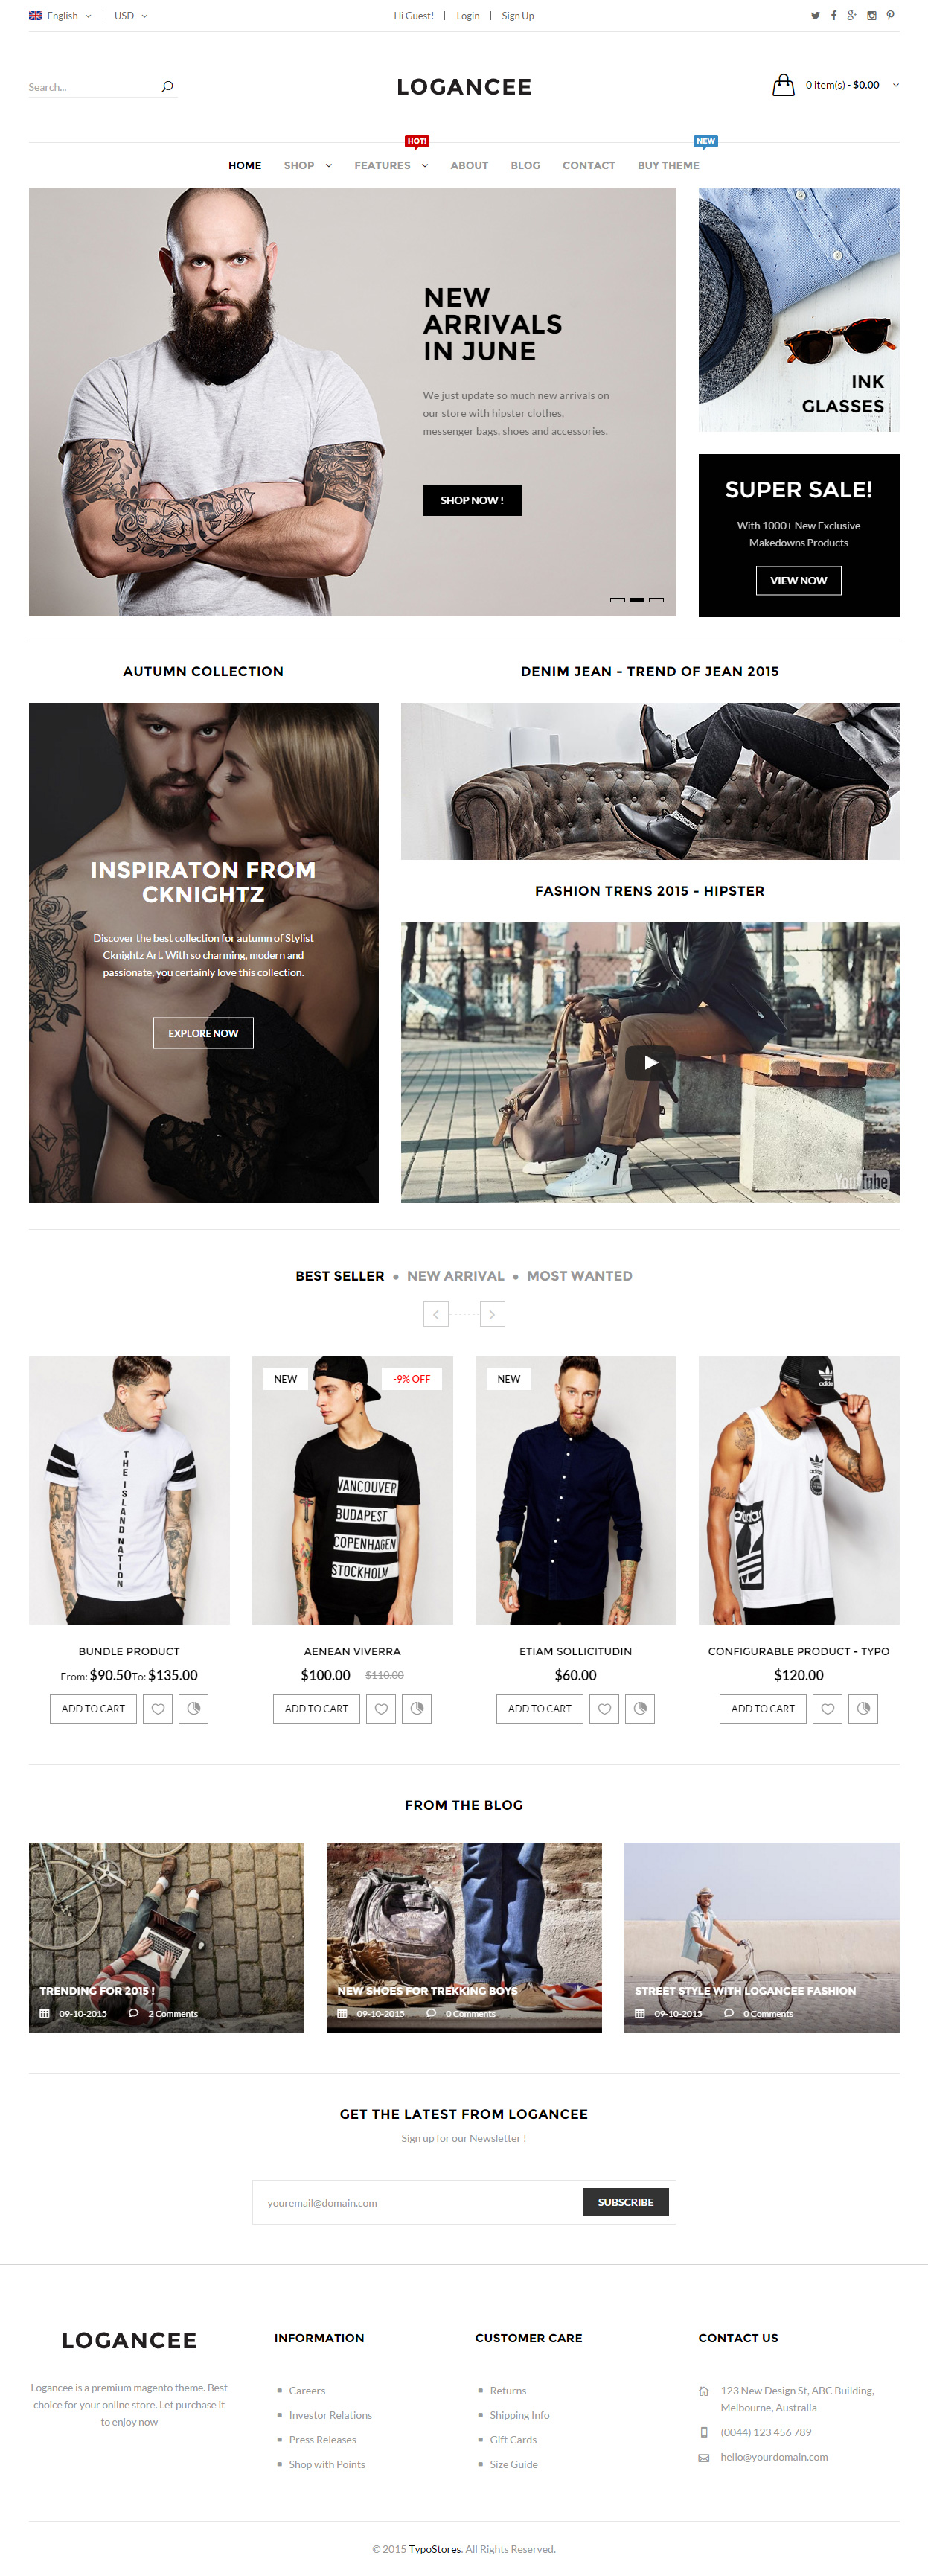 40 Best Magento Themes 2017 - Responsive Miracle